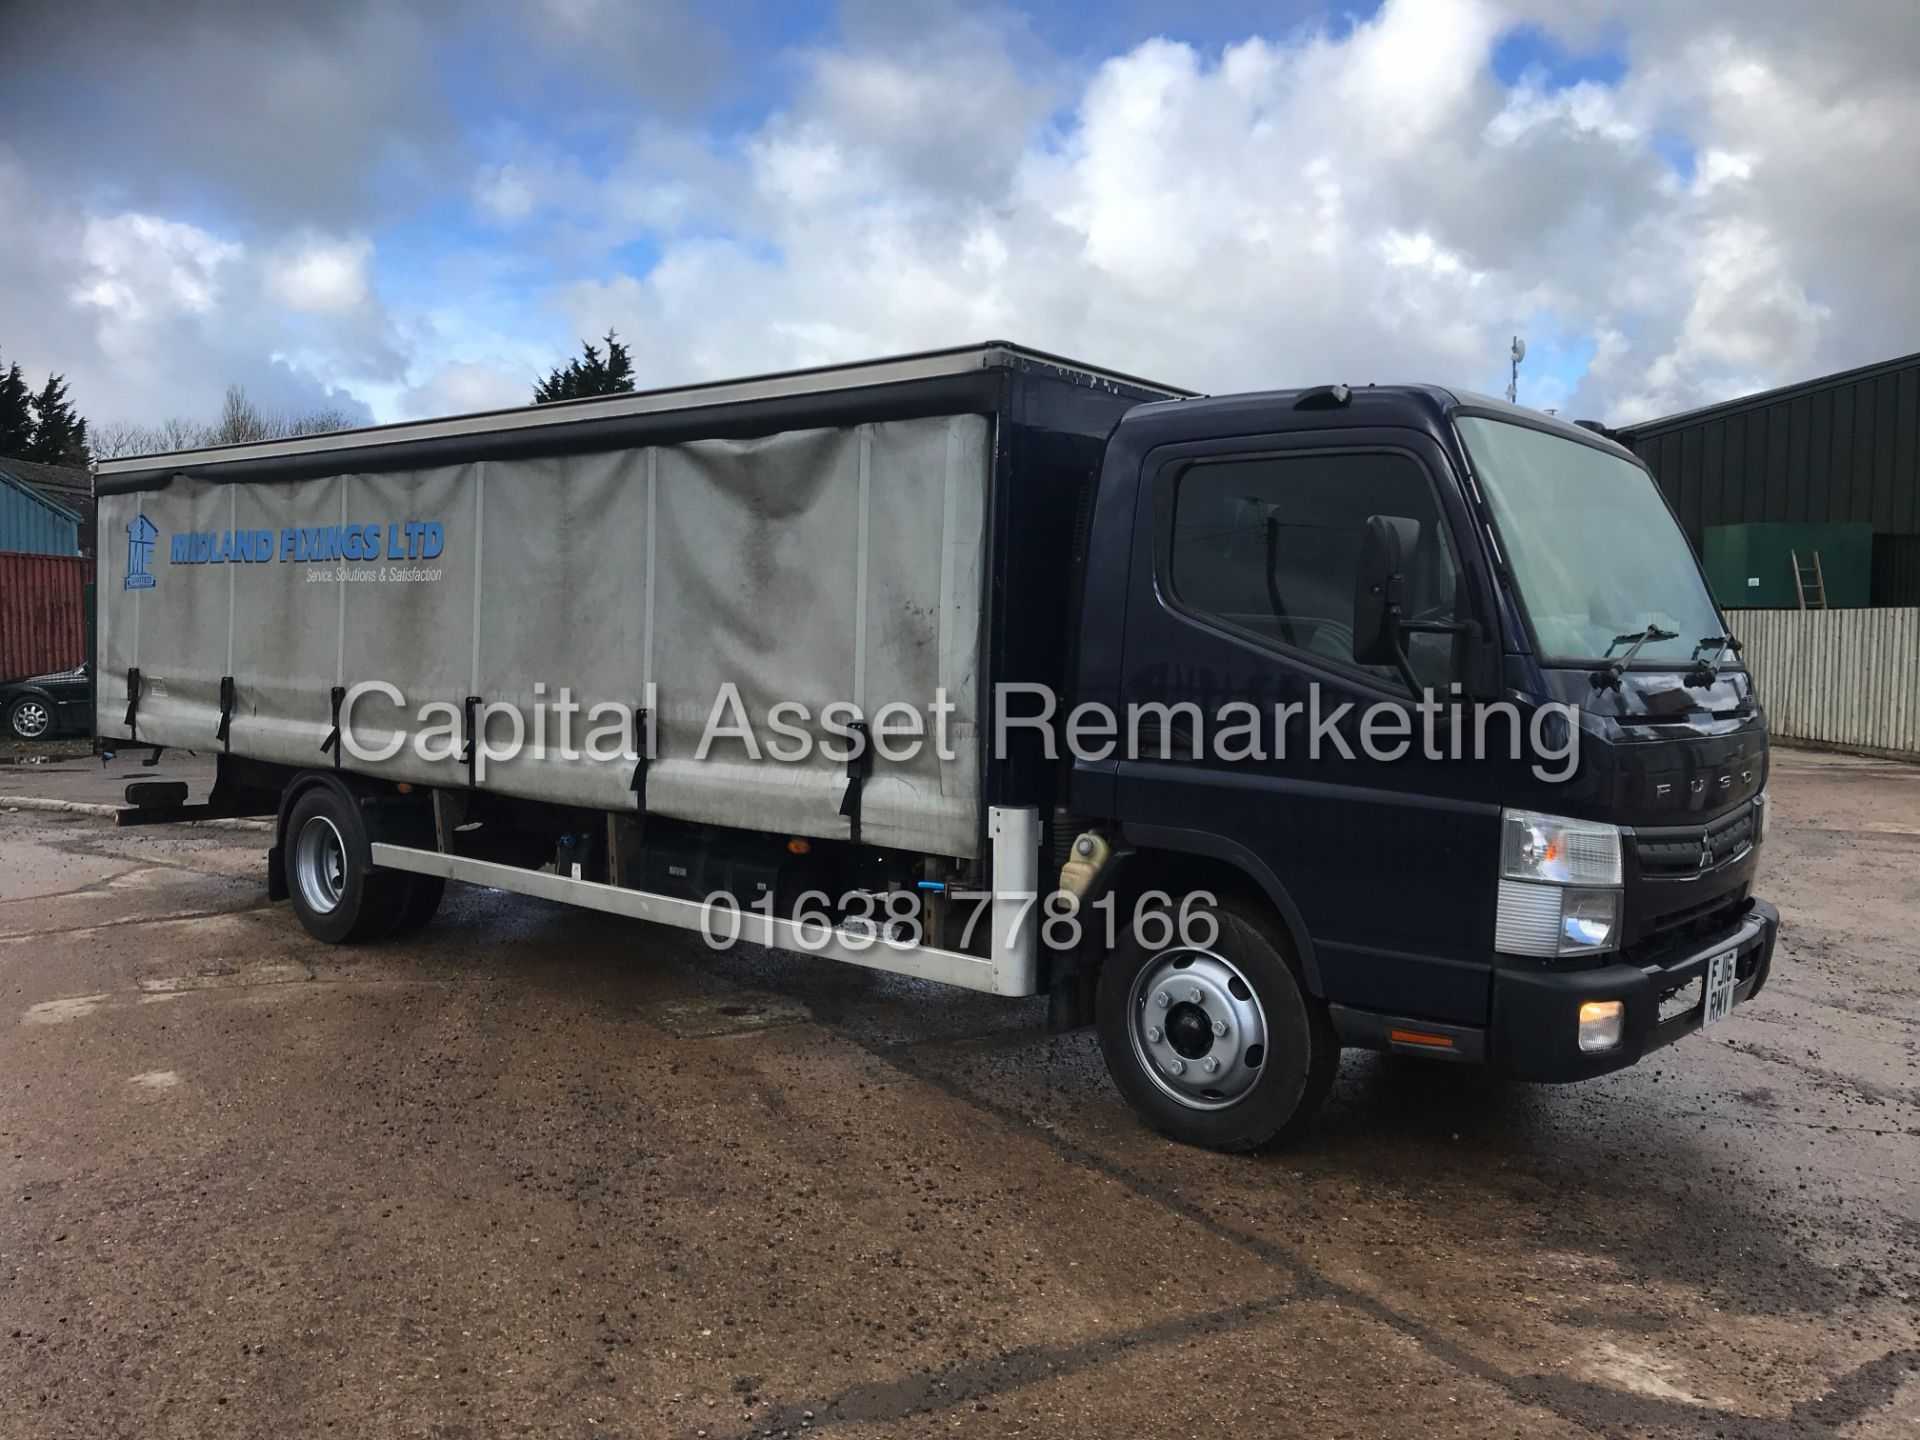 (ON SALE) MITSUBISHI FUSO CANTER 7C18 (16 REG) 1 OWNER *EURO 6* AD-BLUE - 4 WAY CAMERA SYSTEM - Image 6 of 20